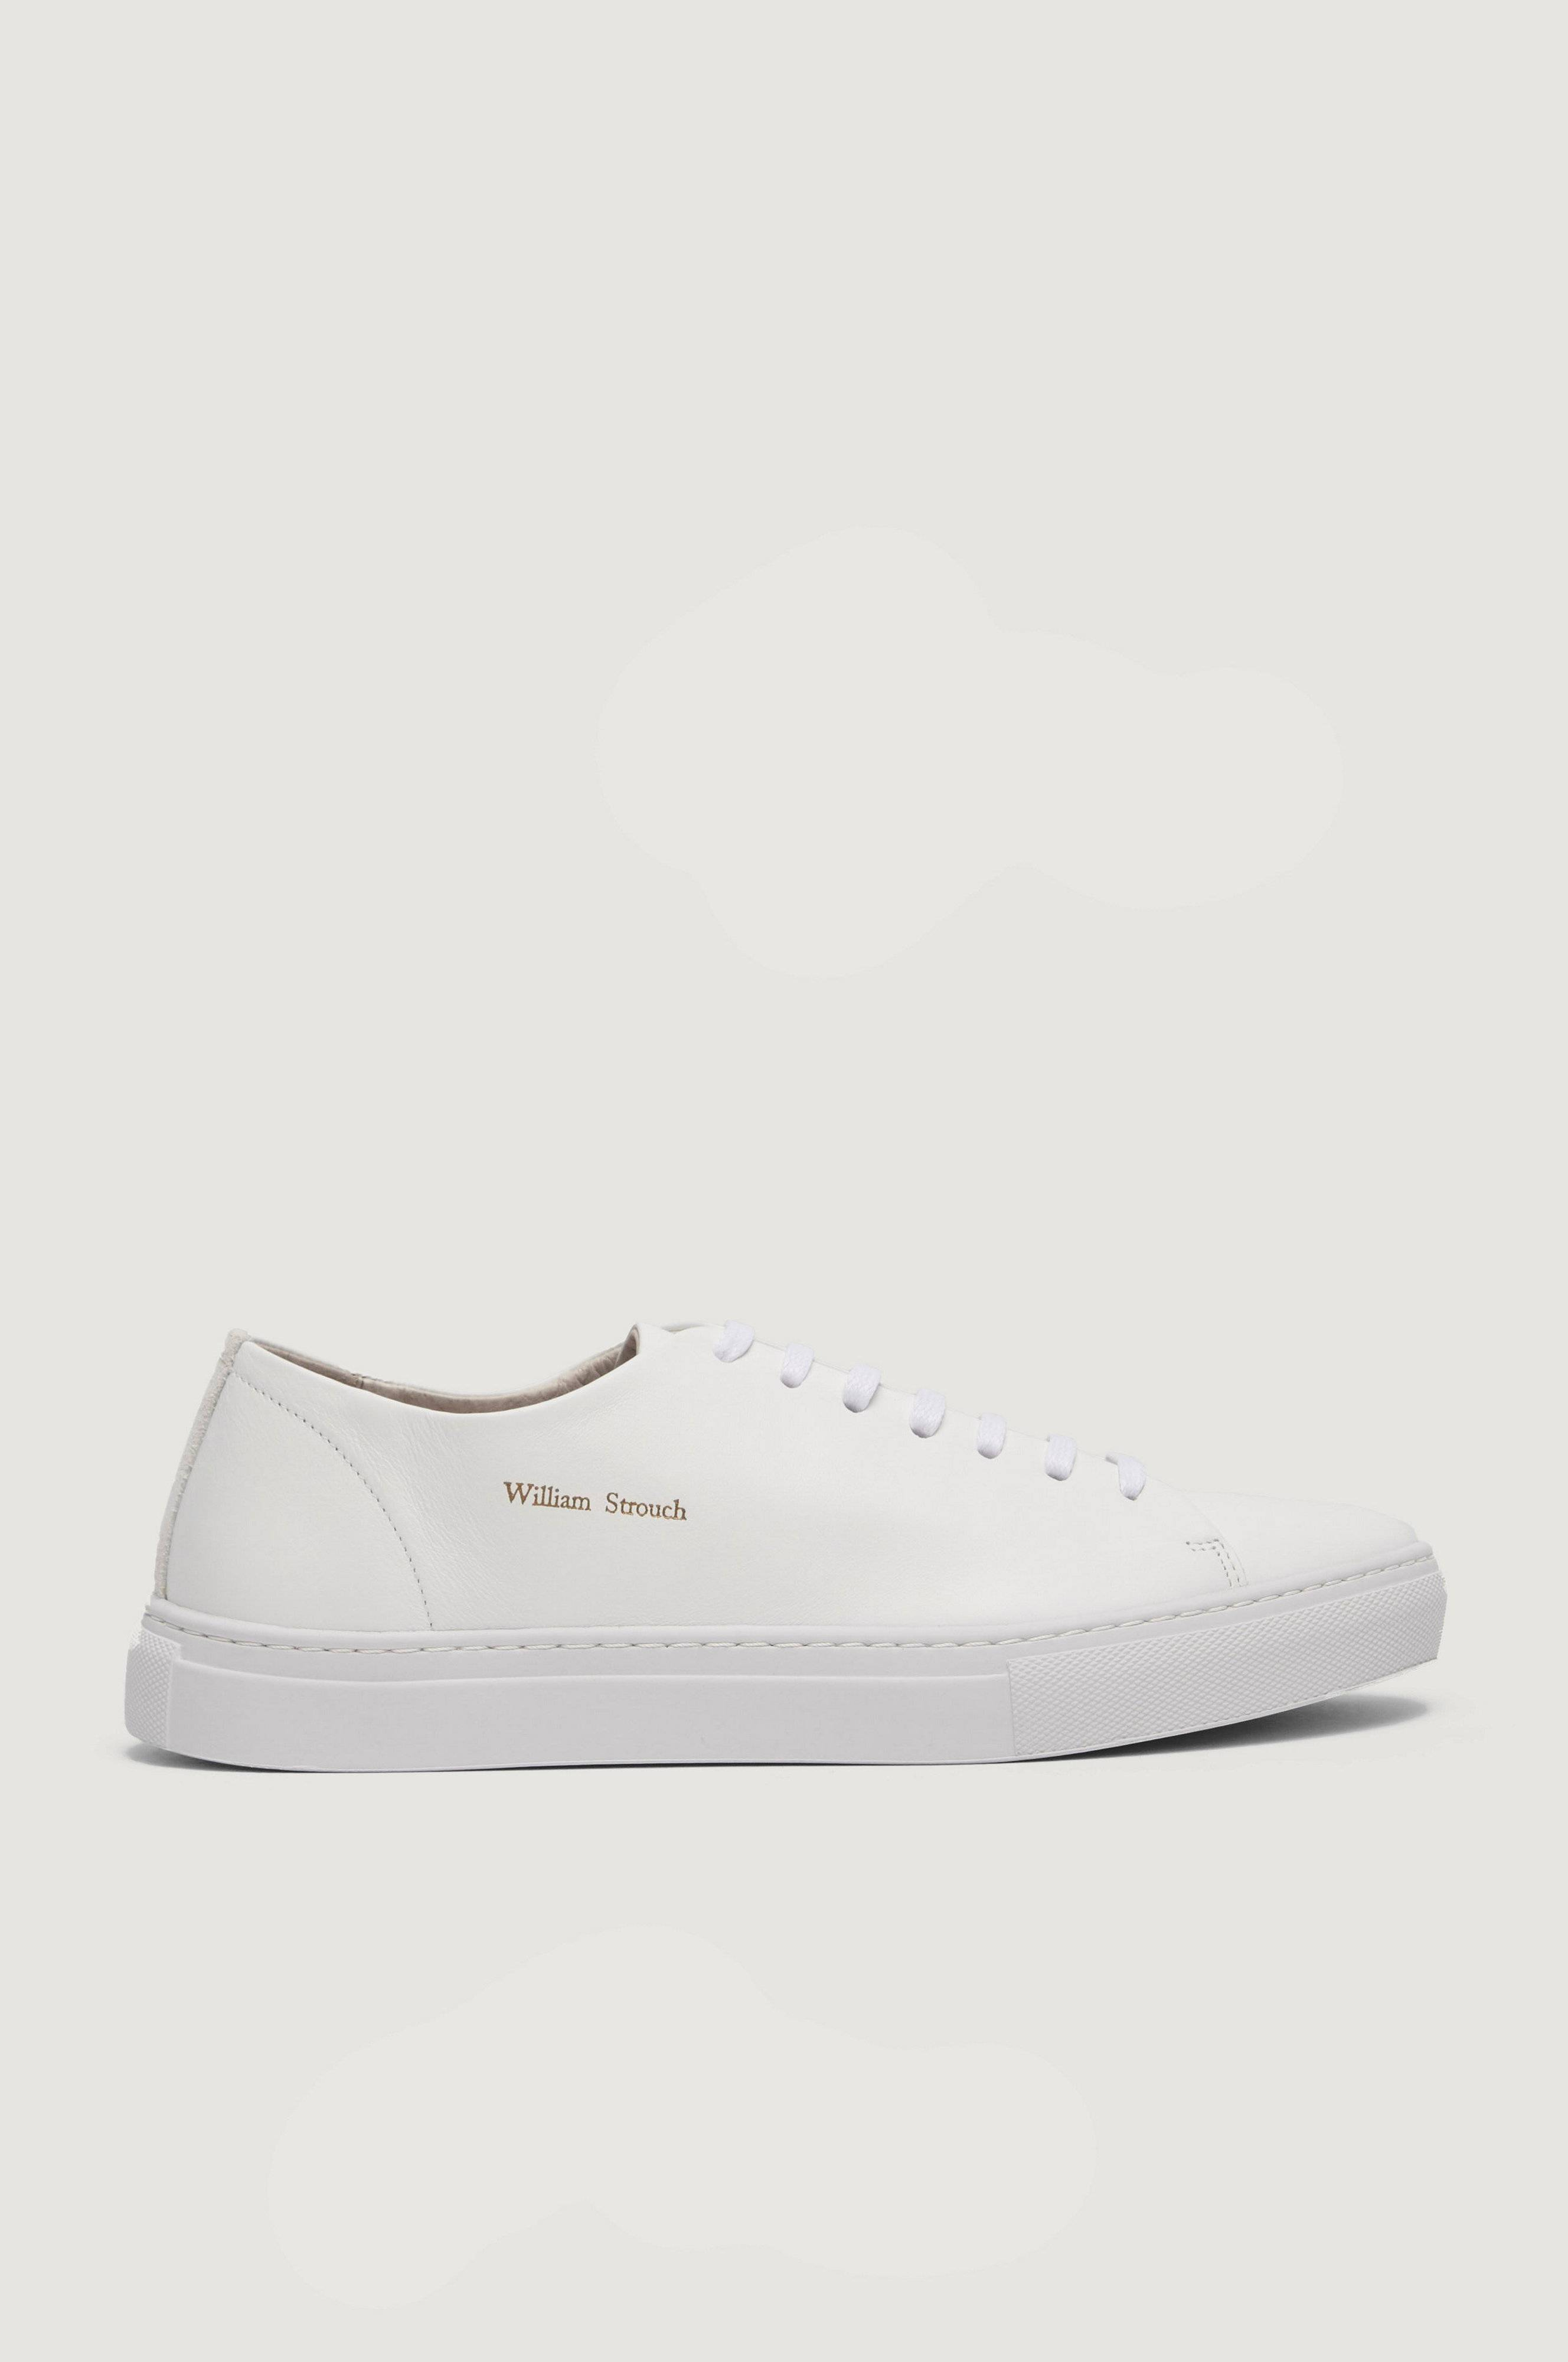 William Strouch SH Classic Suede Sneakers Vit